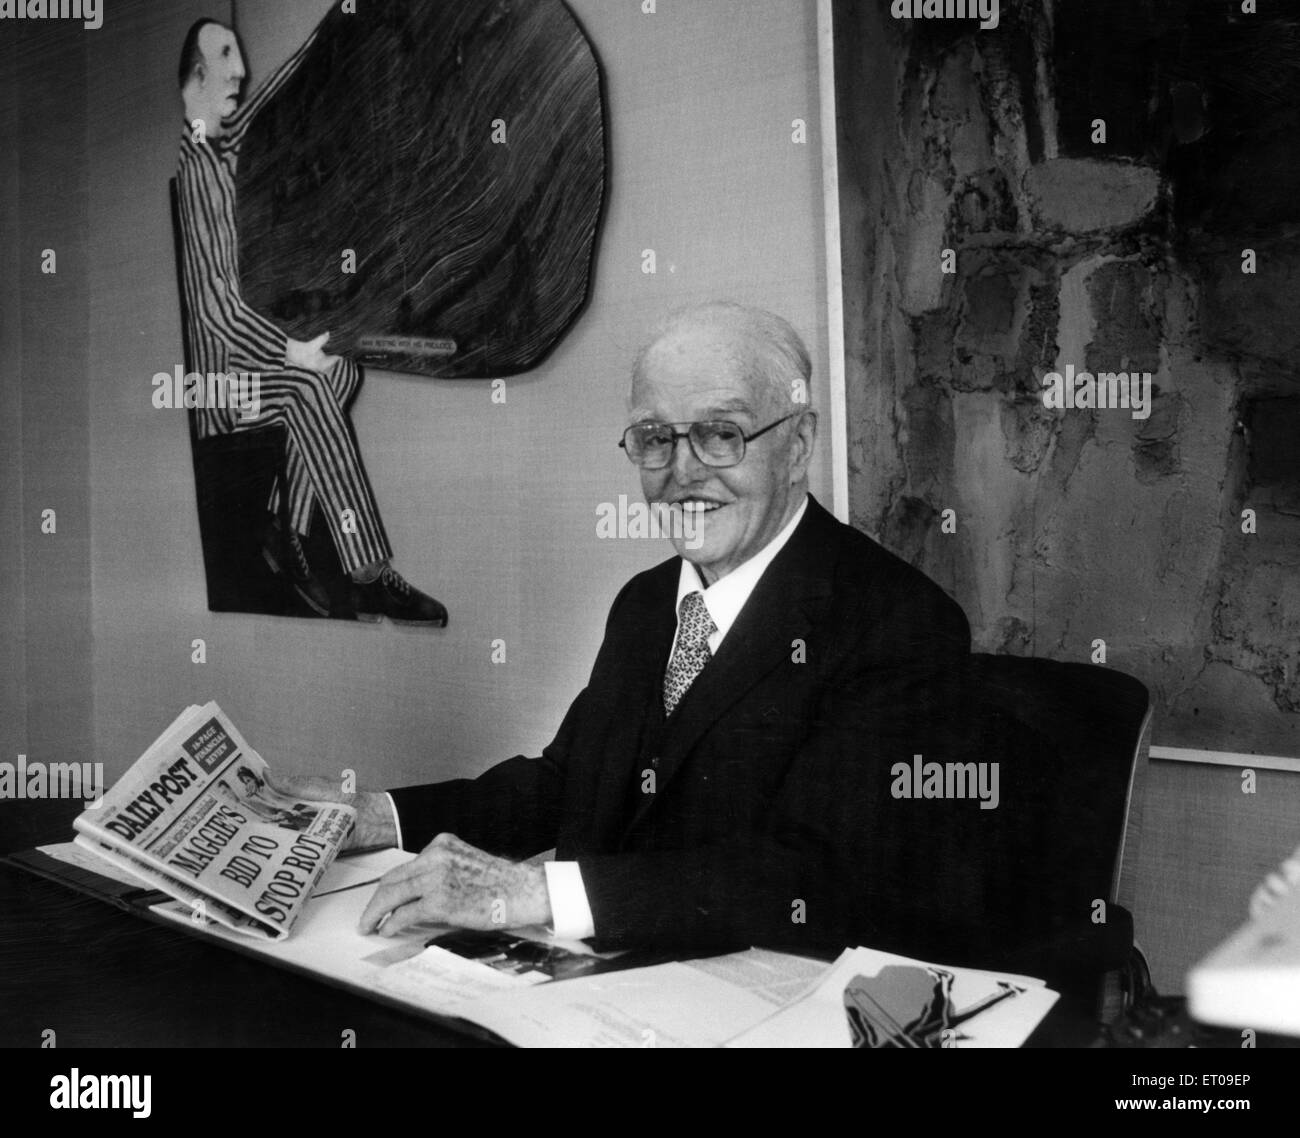 Sir John Moores CBE (25th January 1896- 25th September 1993). Businessman and philanthropist who founded Littlewoods Stock Photo